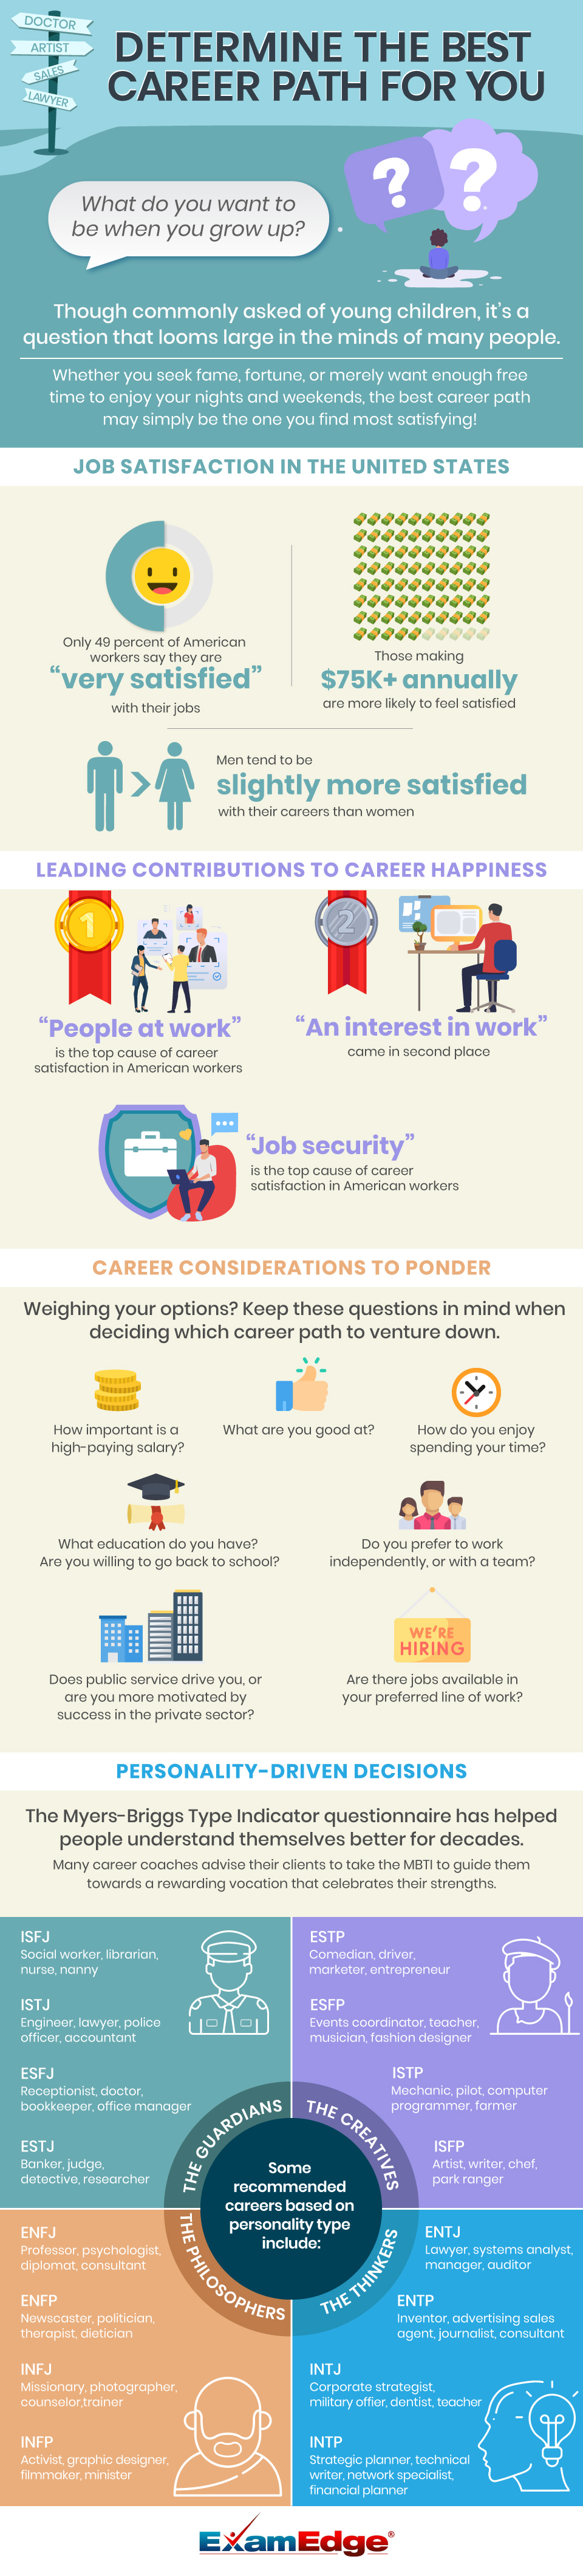 Determine the Best Career Path for You